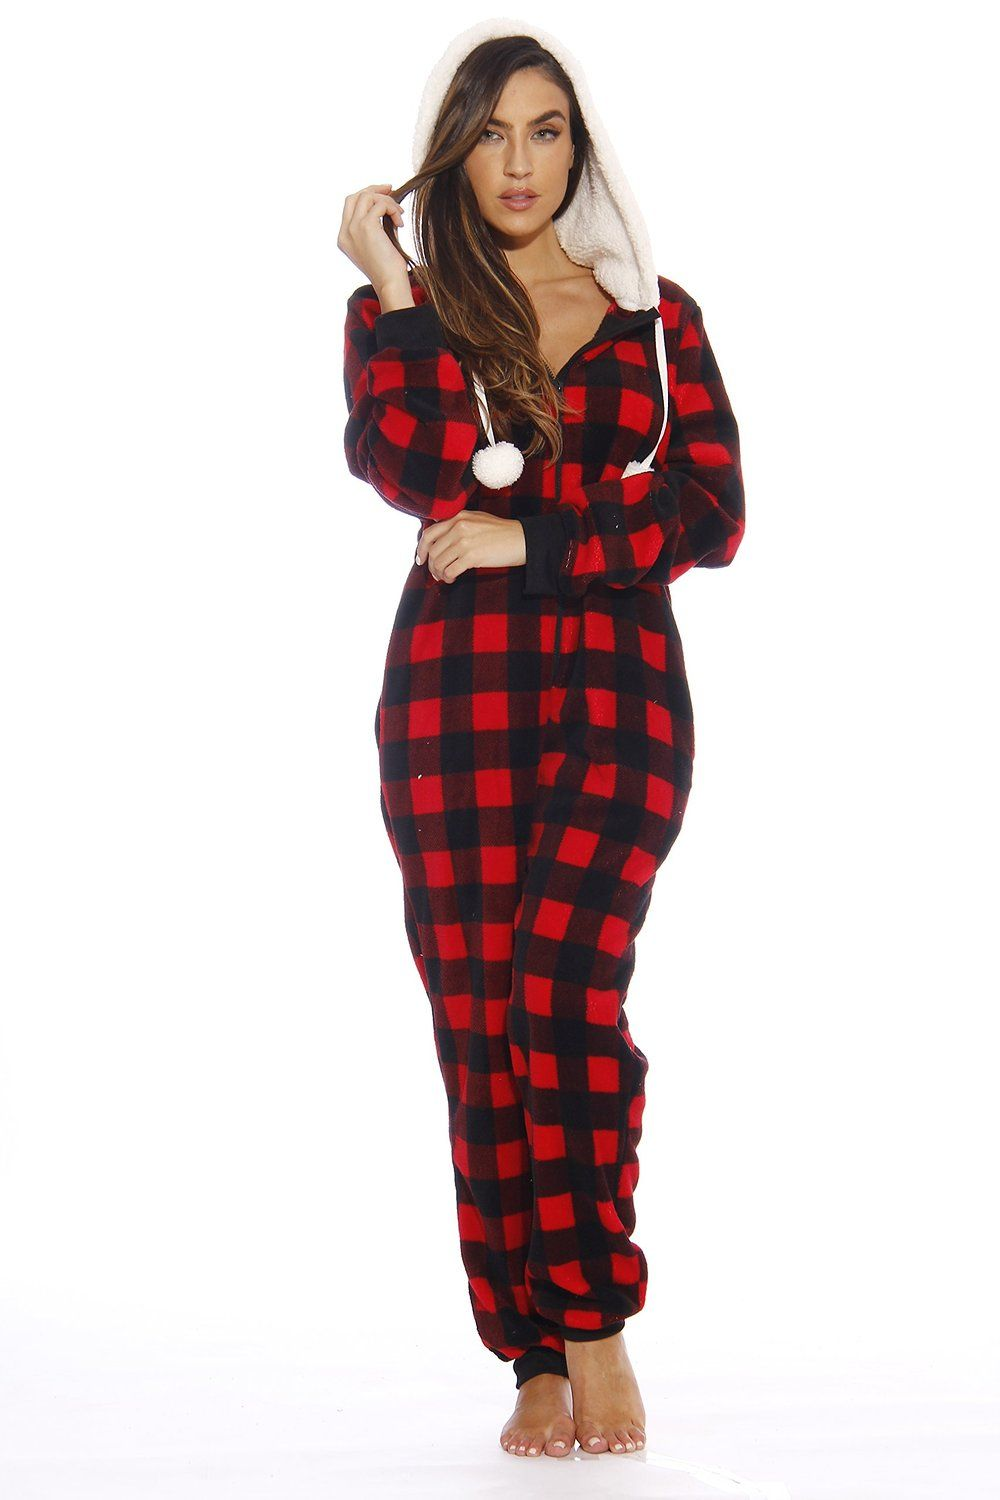 36f23baafb57 Amazon.com  Just Love Adult Onesie   Pajamas   Onesies  Clothing ...